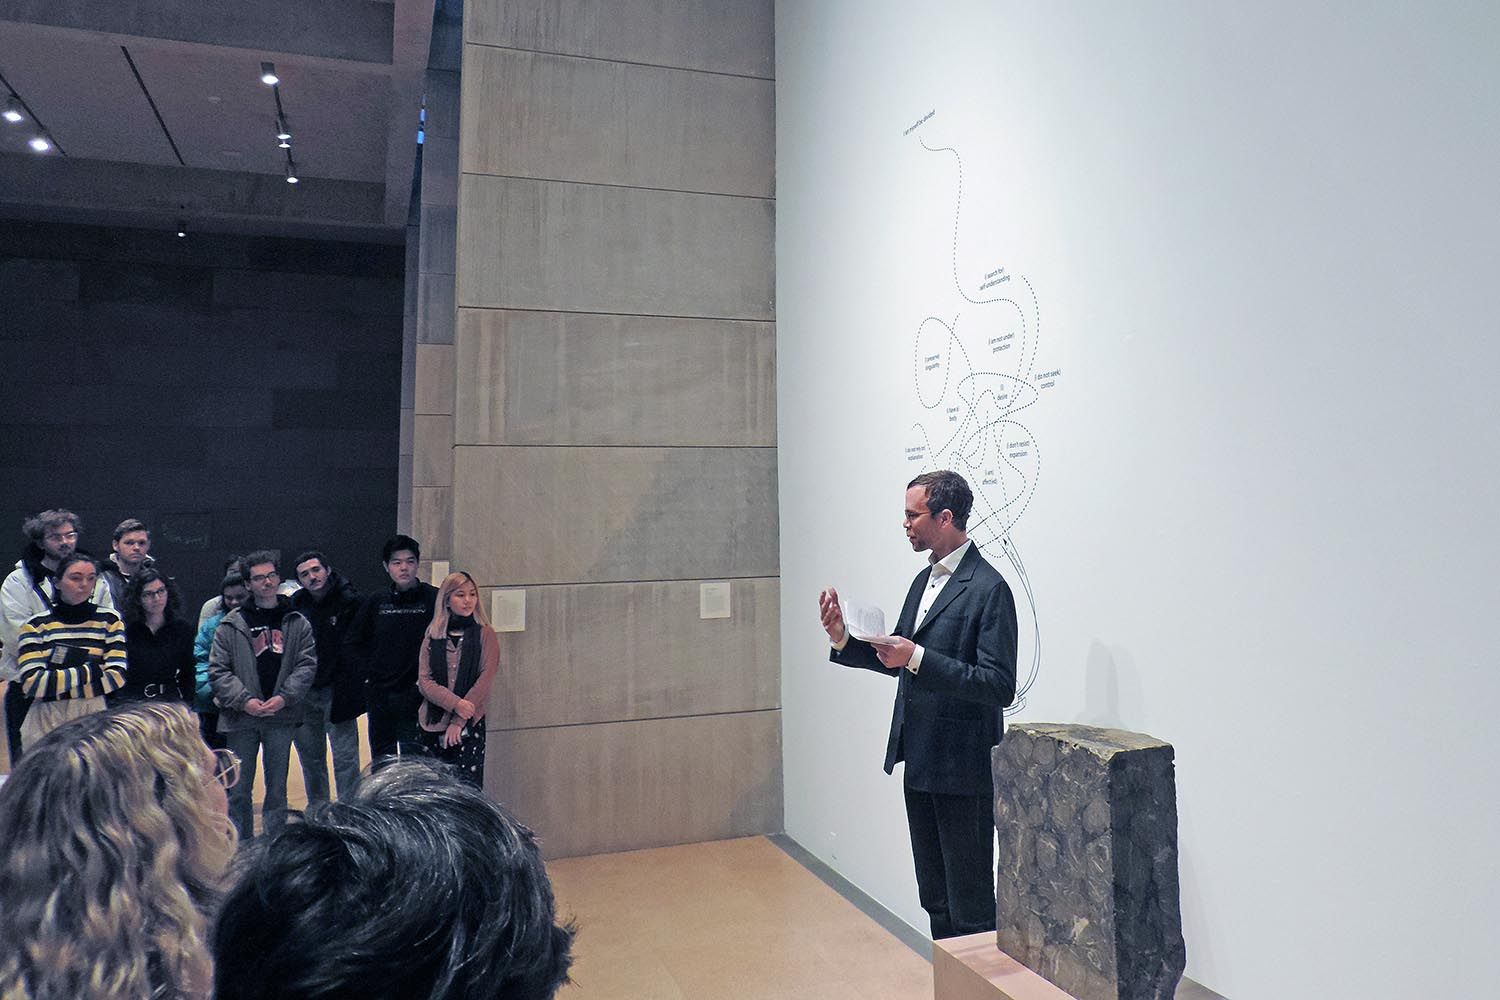 The opening reception included opening remarks by Curator Benjamin Chaffee, associate director of visual arts.